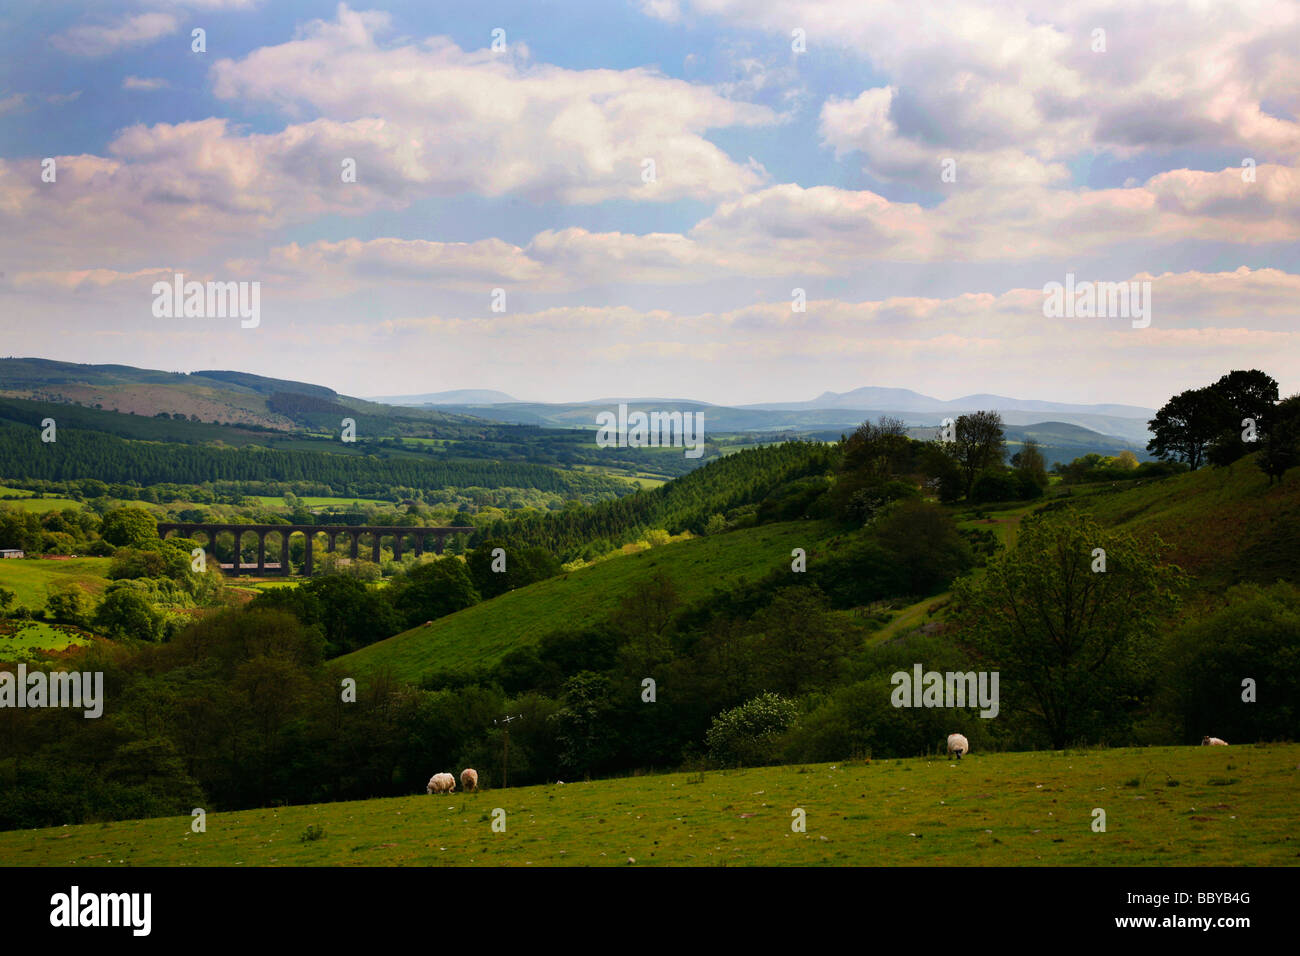 Rural view towards Cynghordy Viaduct on the Heart of Wales Line near the small town of Llandovery - Stock Image